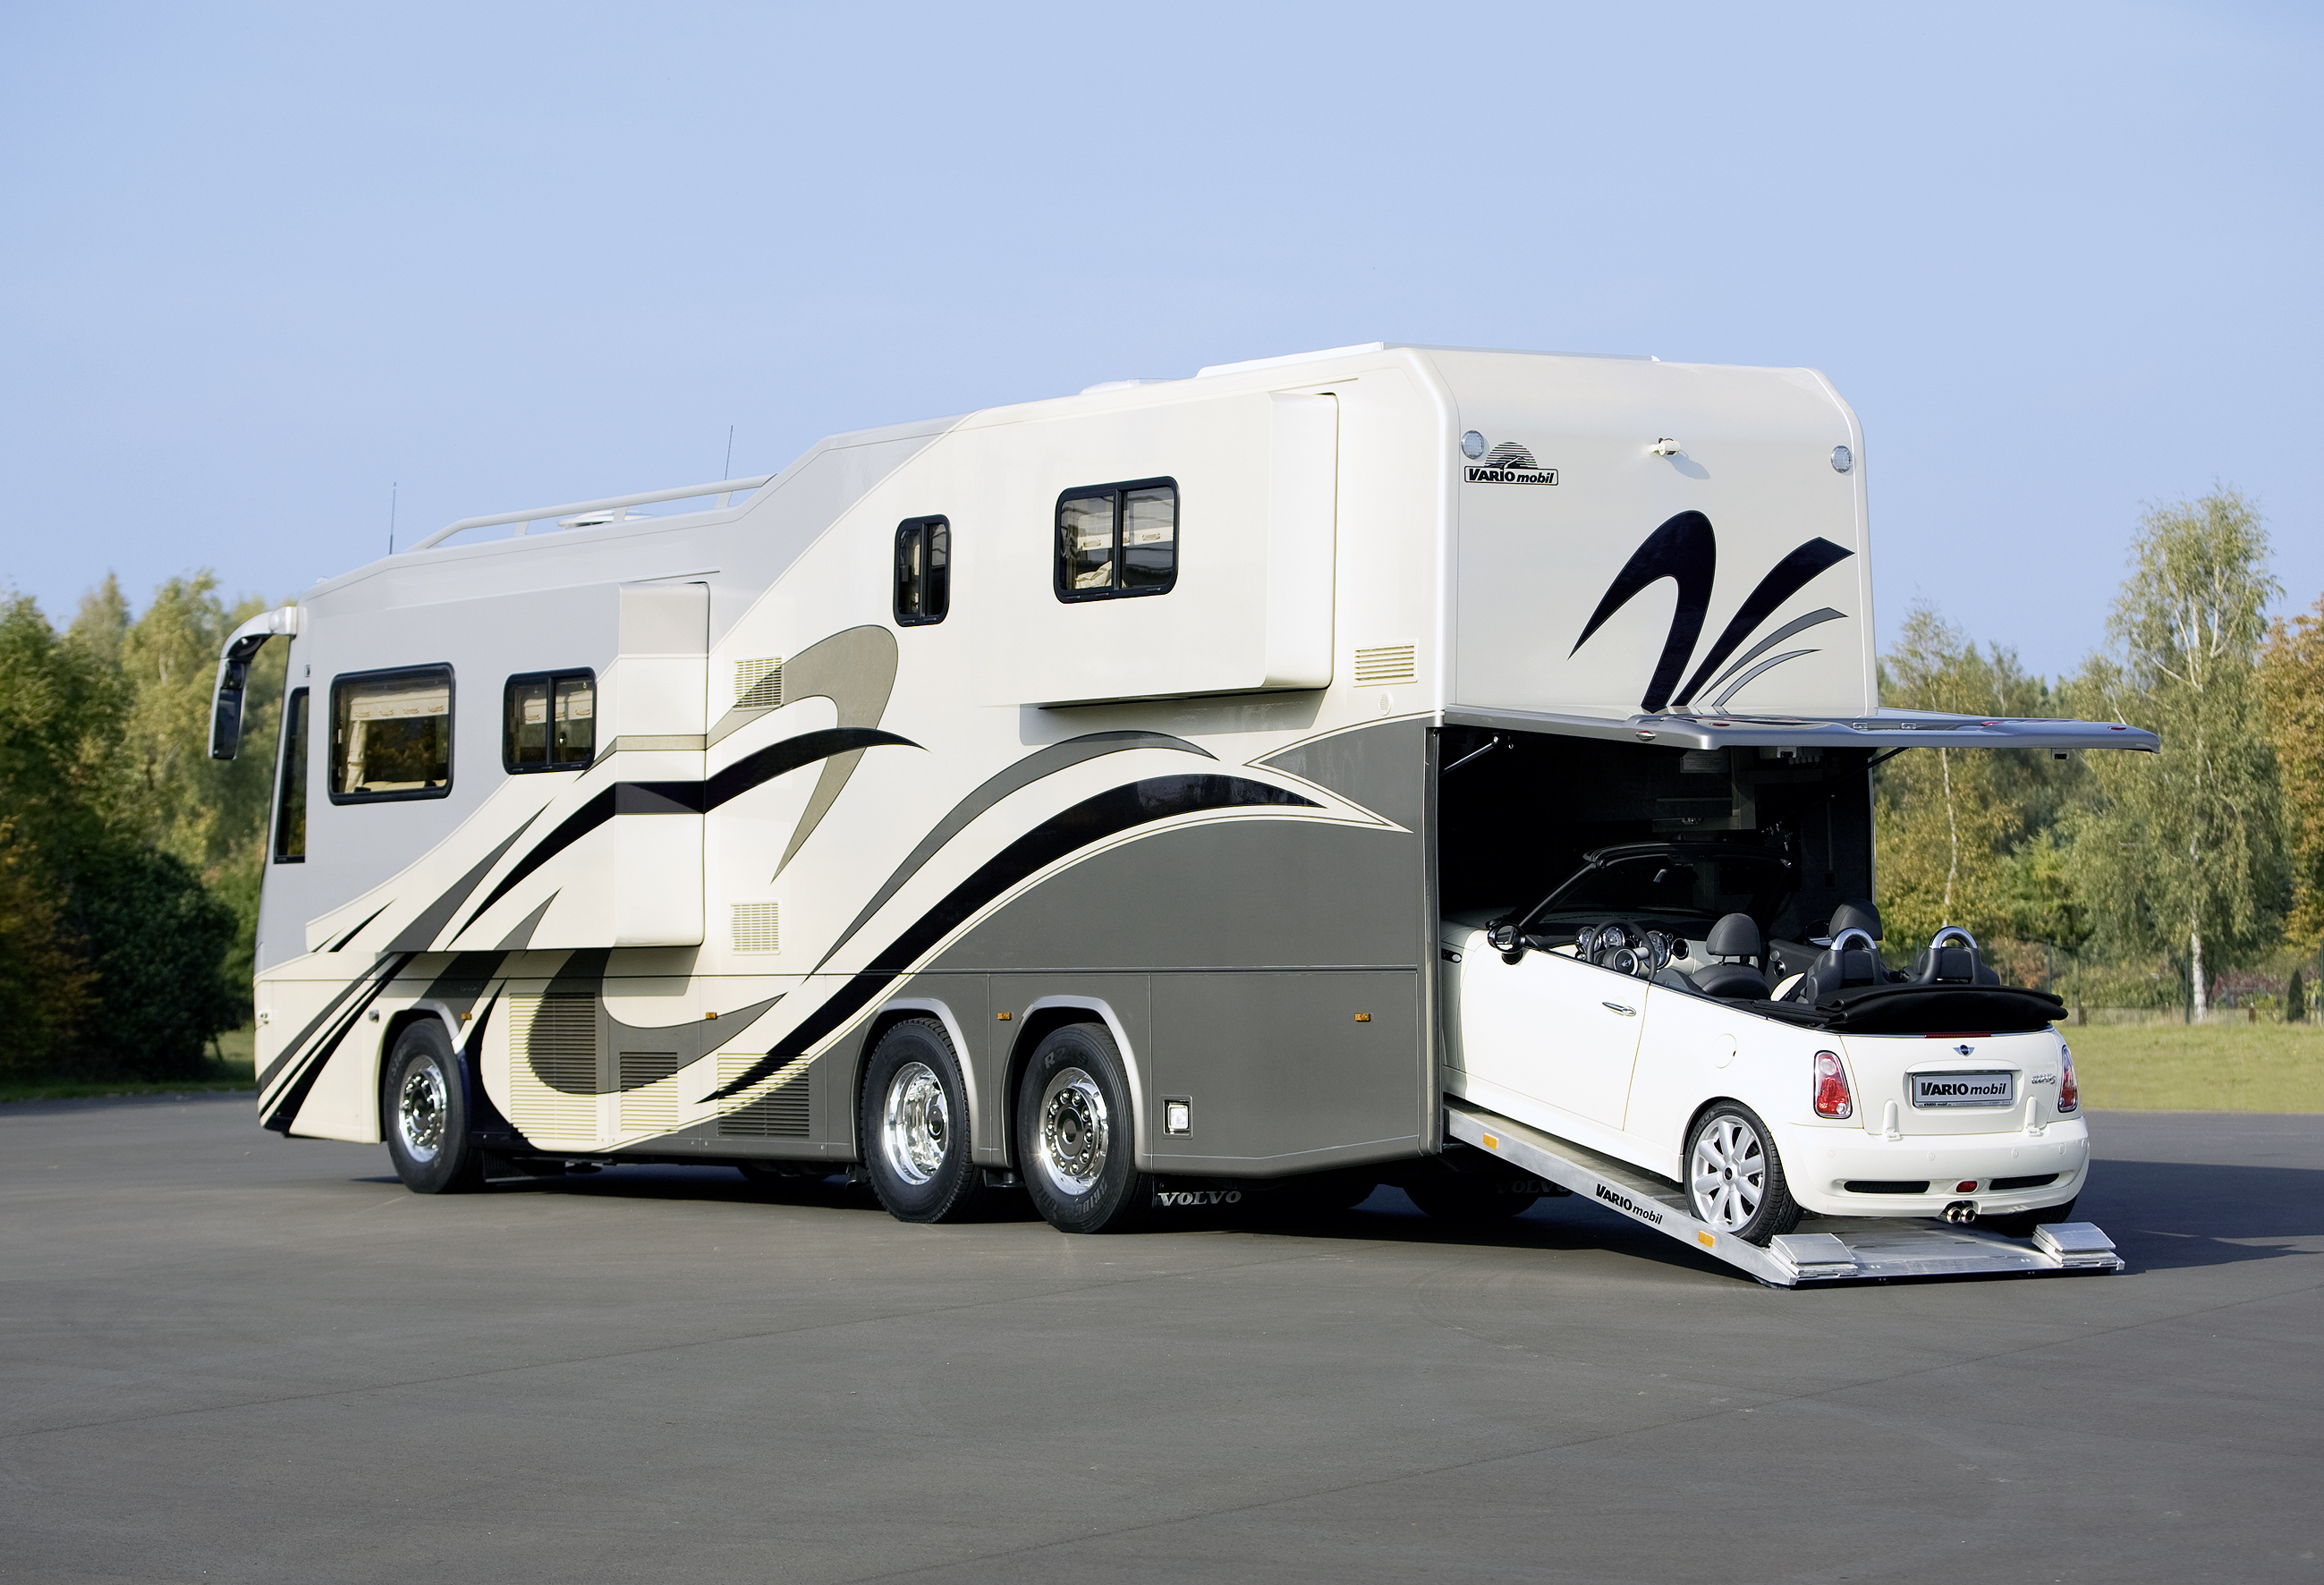 Superlative Rv 12 Meters 3x Axels 3x Slide Outs 420 Hp 25 T